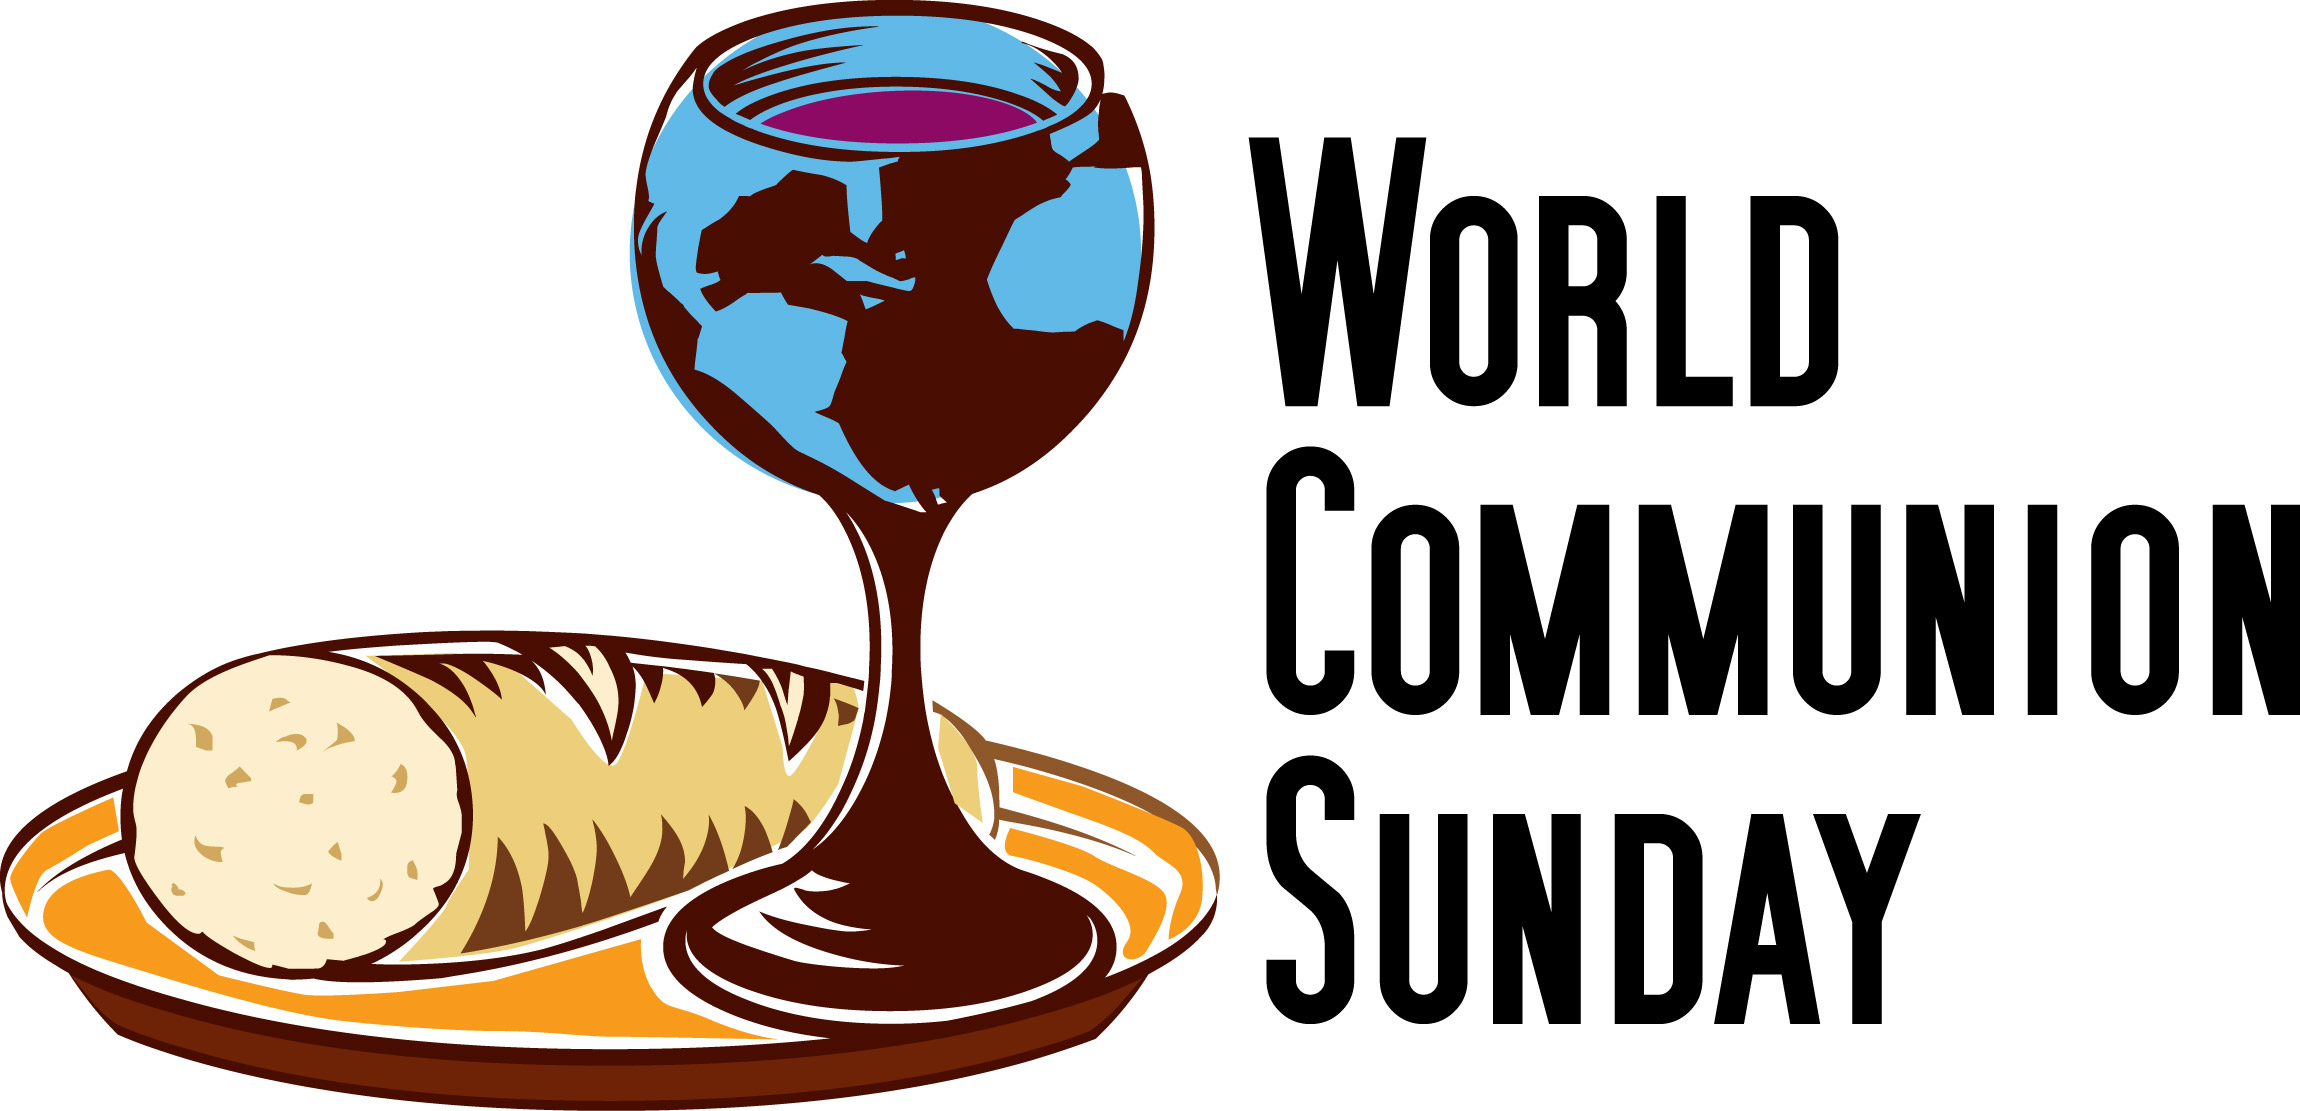 World Communion Sunday By Cri   Beacon Falls Congregational Church   A